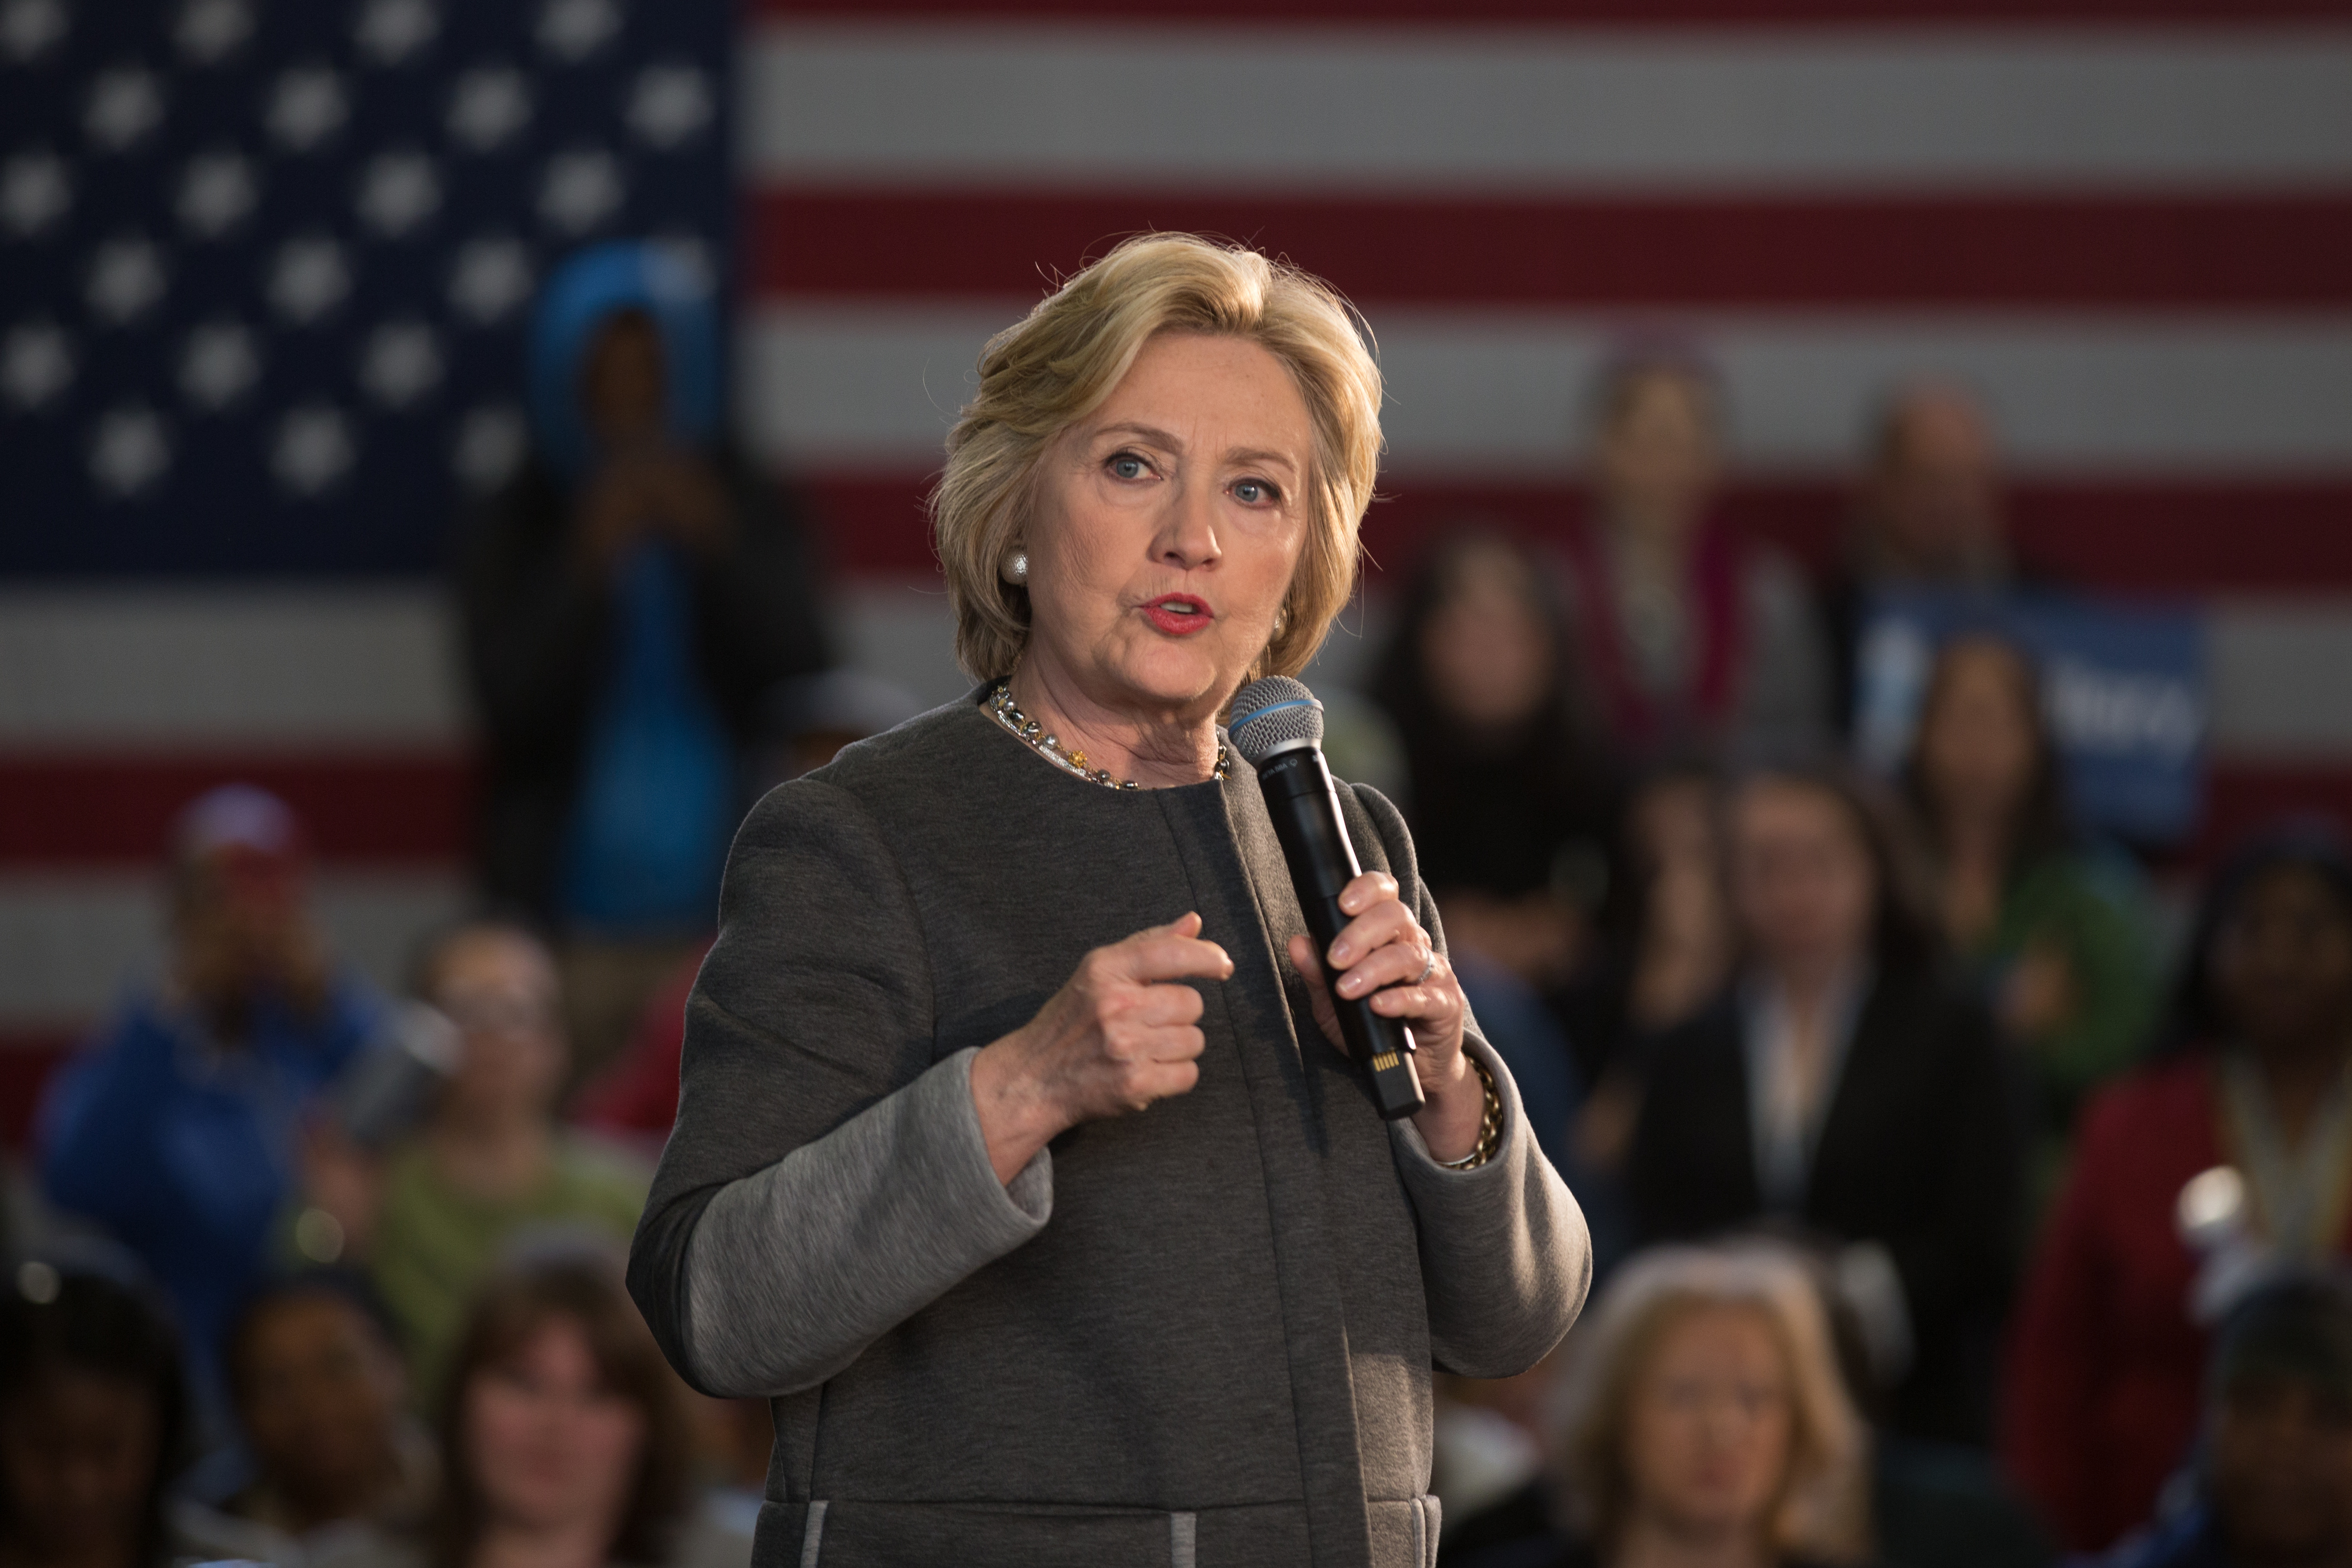 Hillary Clinton speaks at Hillary Town Hall with Congresswomen Yvette Clarke and First lady of New York City Chirlane McCray on April 5, 2016.